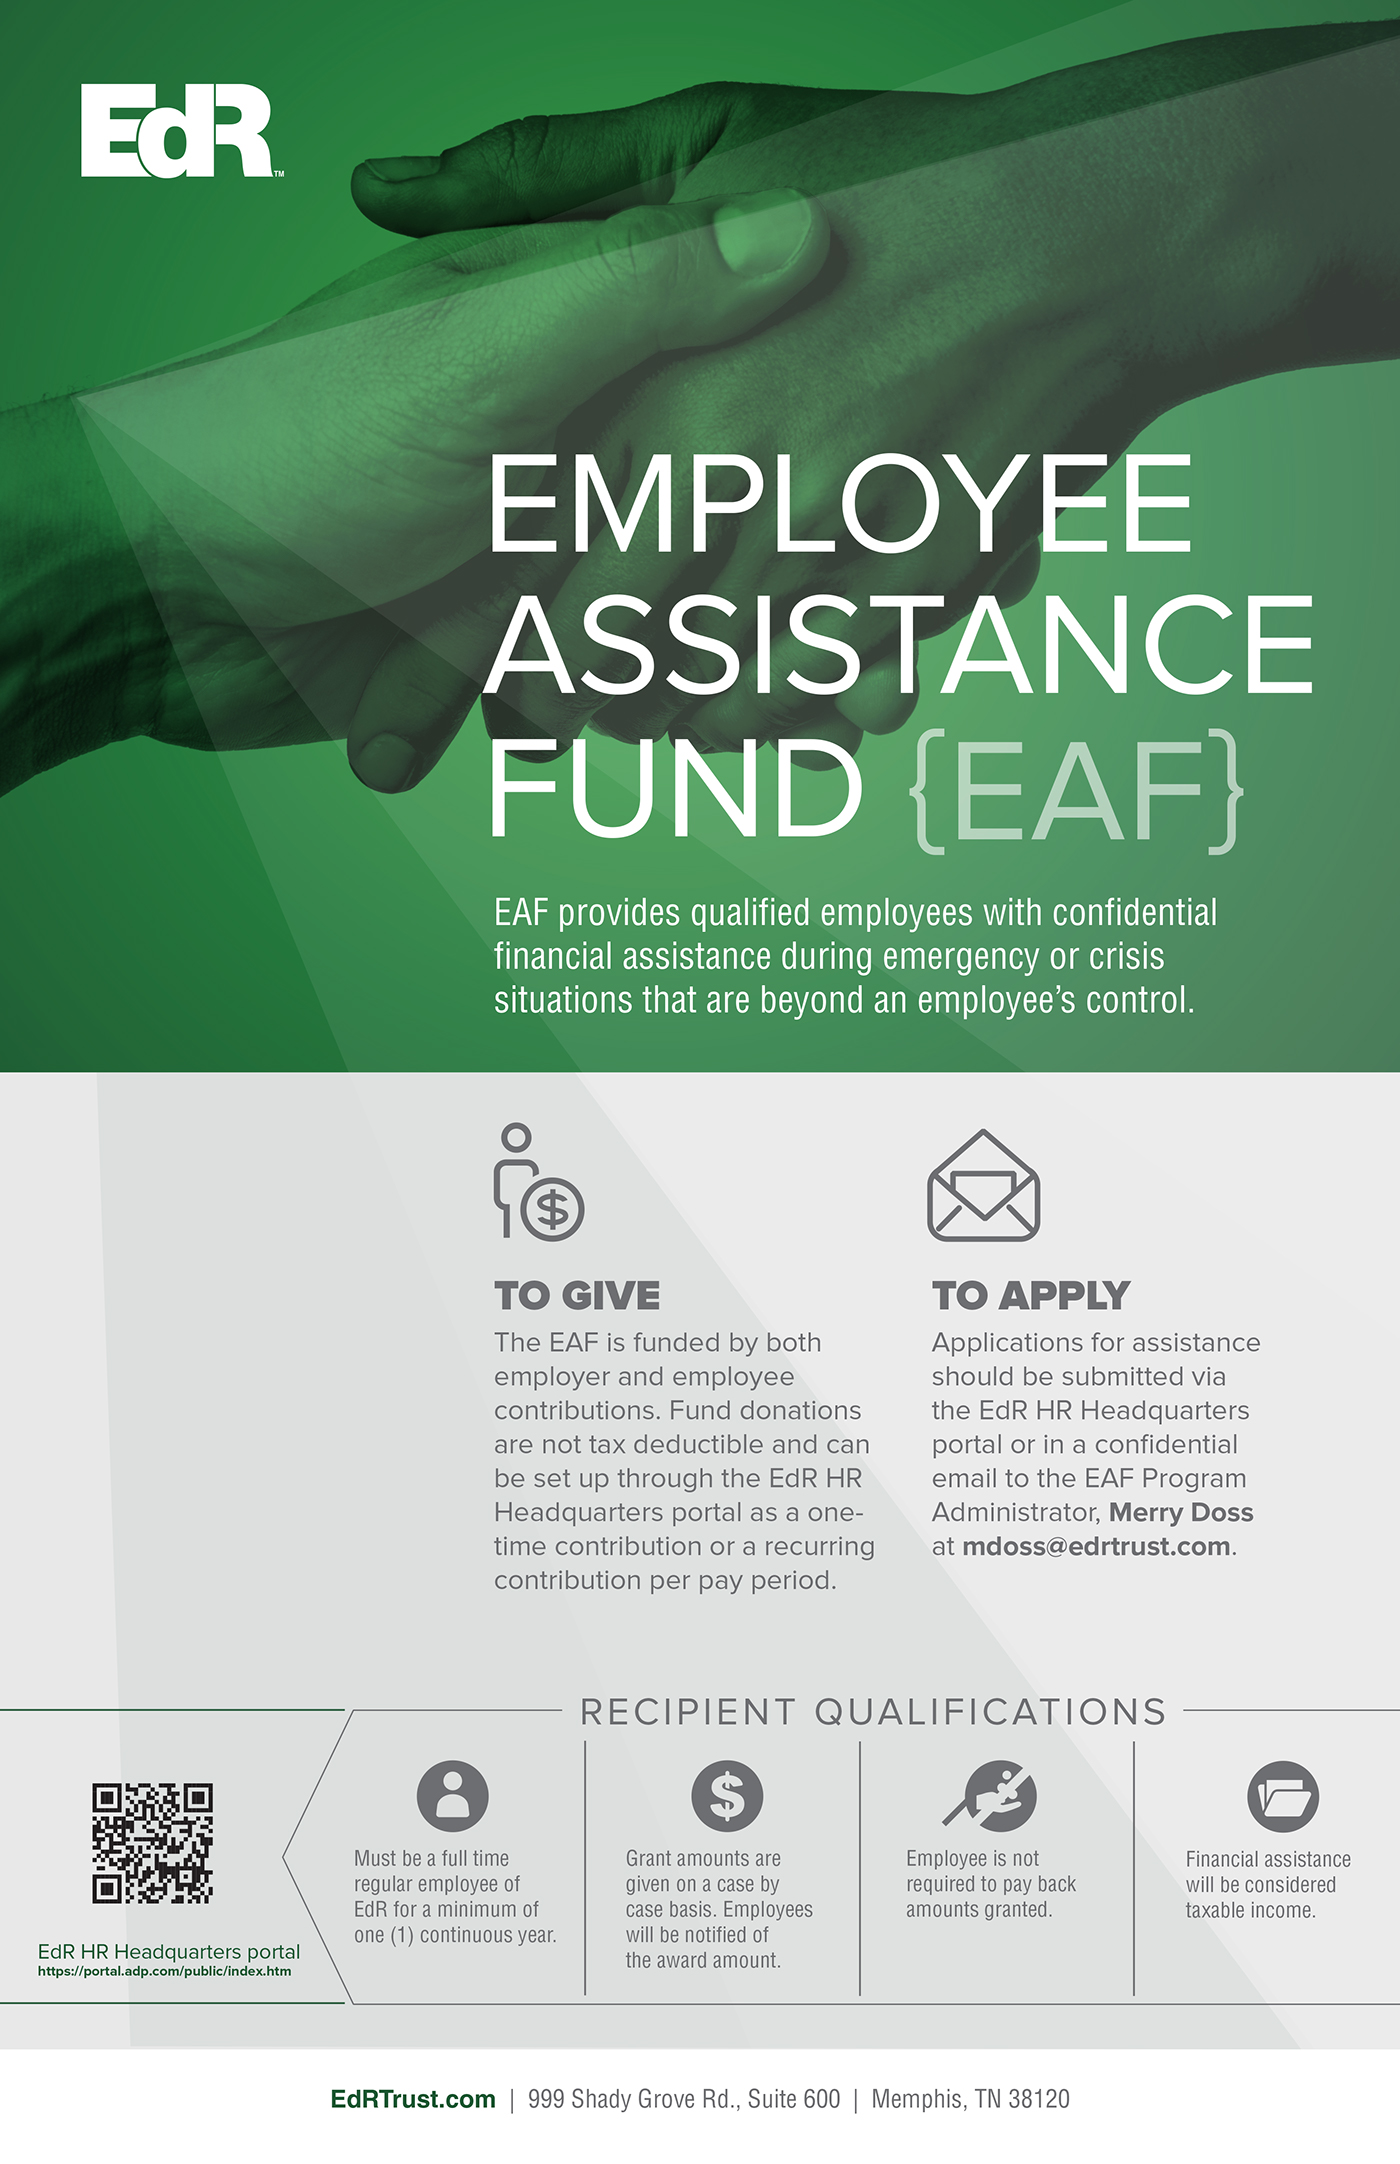 EdR Employee Assistance Fund Corporate Poster on Behance